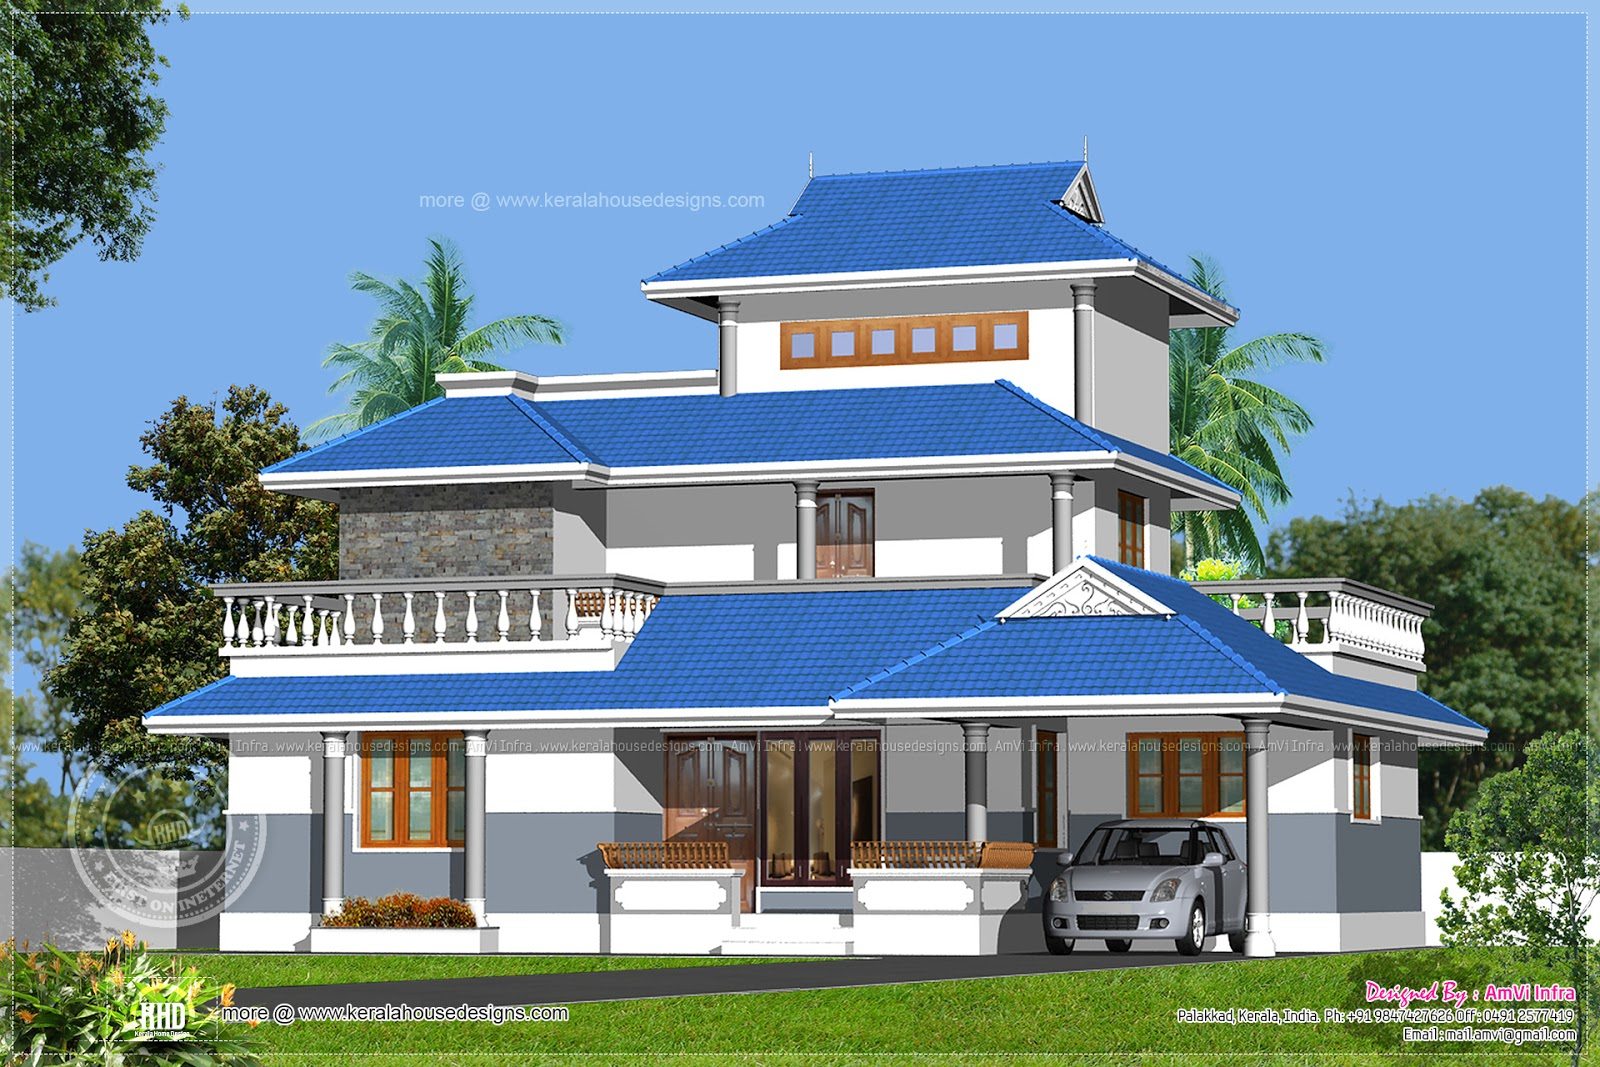 kerala model home design in 1329 sq feet kerala home design and floor plans. Black Bedroom Furniture Sets. Home Design Ideas